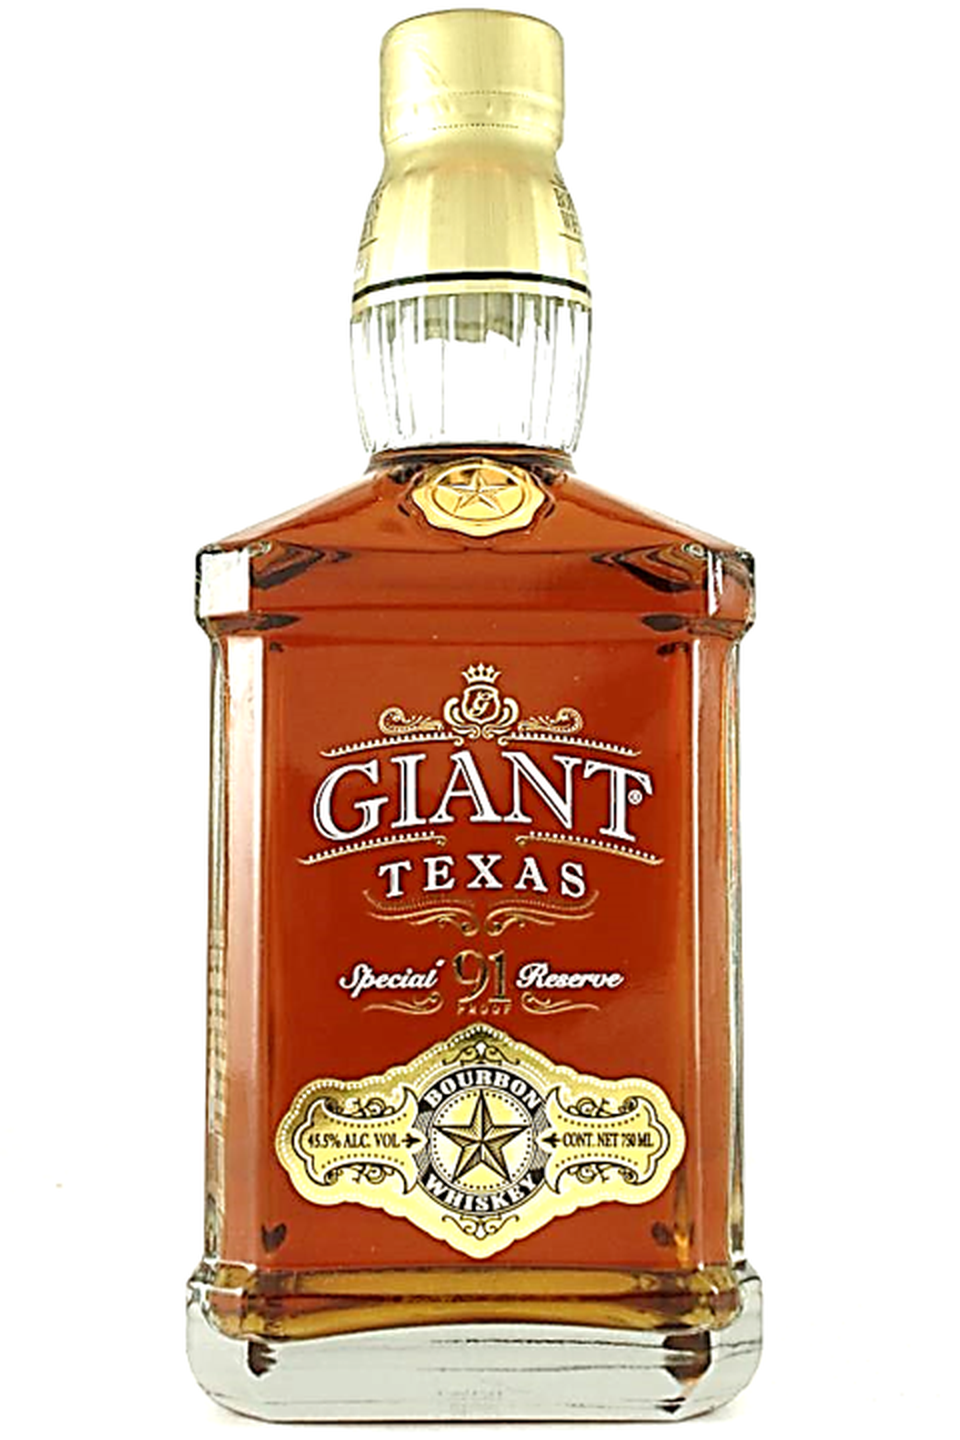 Giant Texas Special Reserve Bourbon Whisky (750ml Bottle)